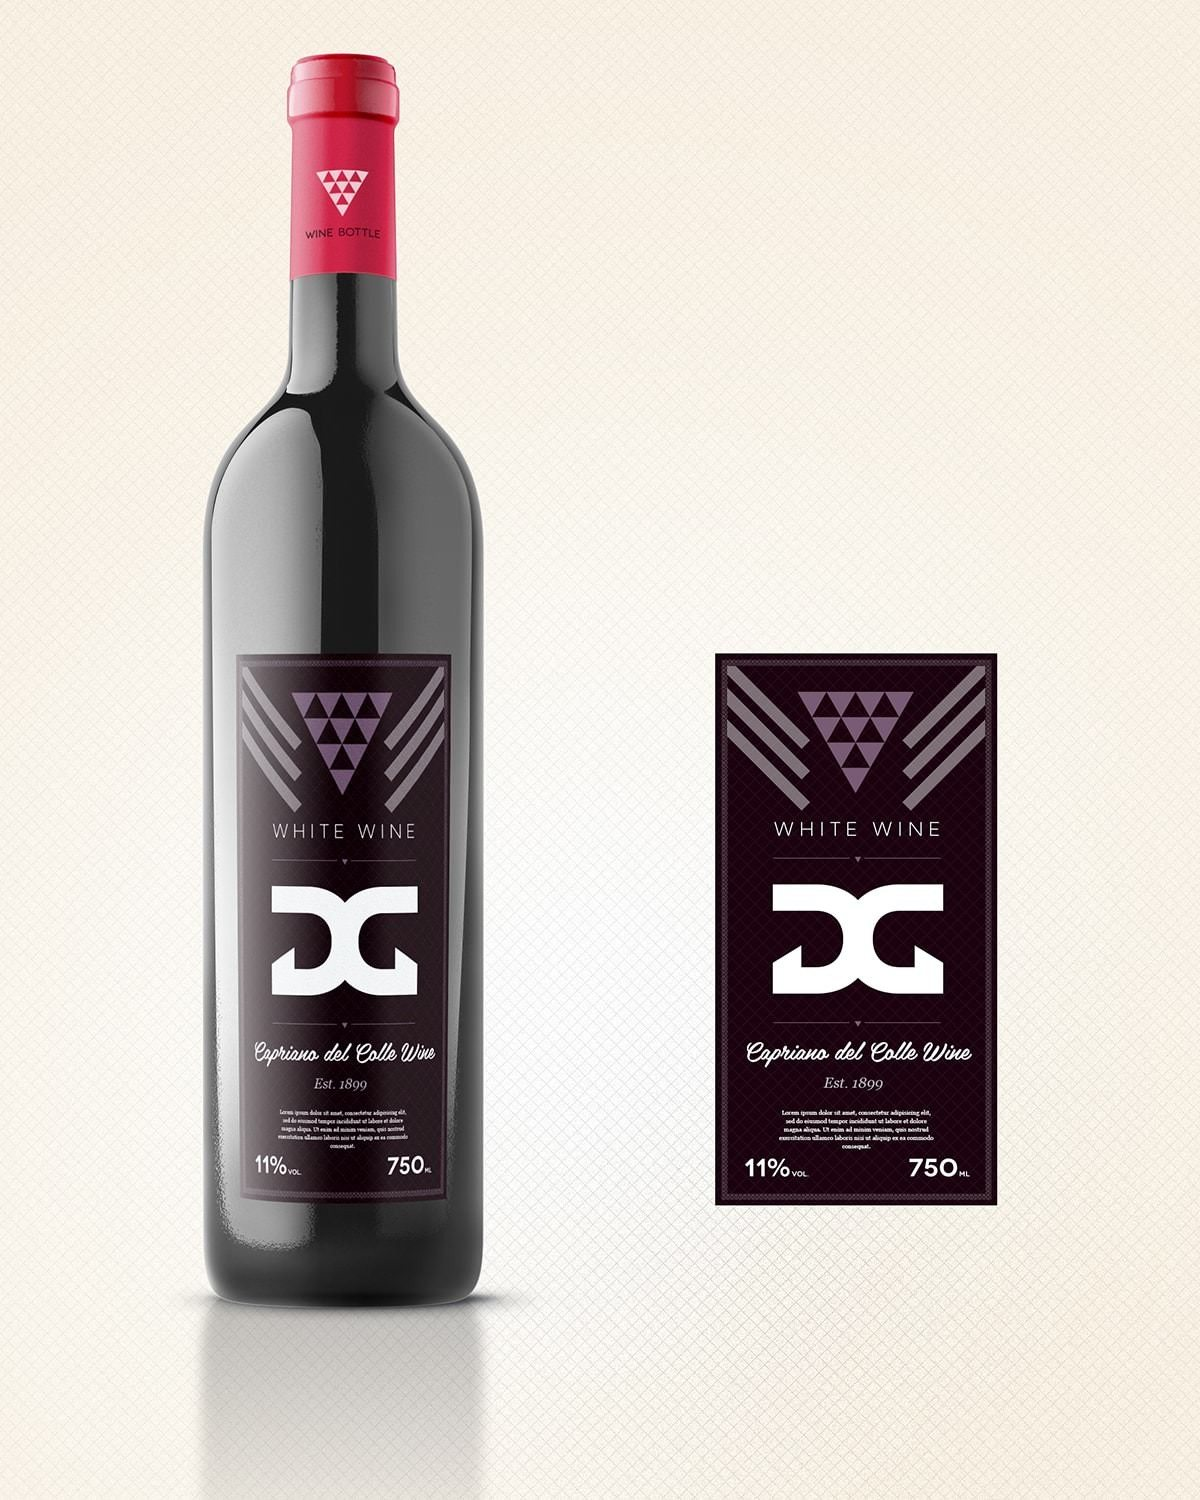 winning-design-wine-bottle-label-min_mini